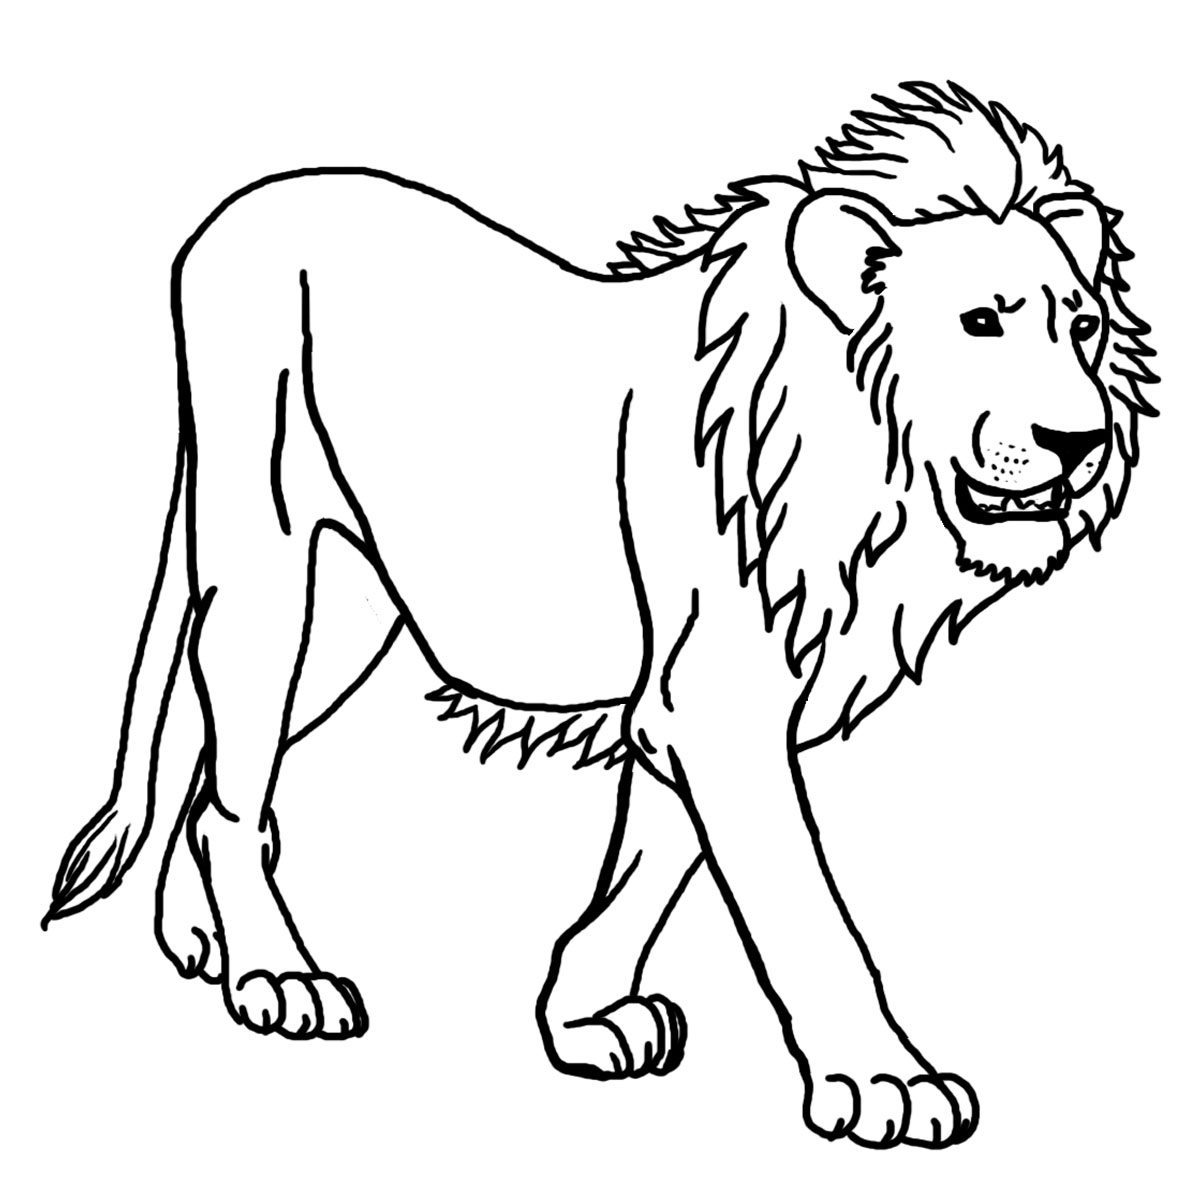 Lion 2 coloriage de lions coloriages pour enfants - Grand dessin a colorier ...